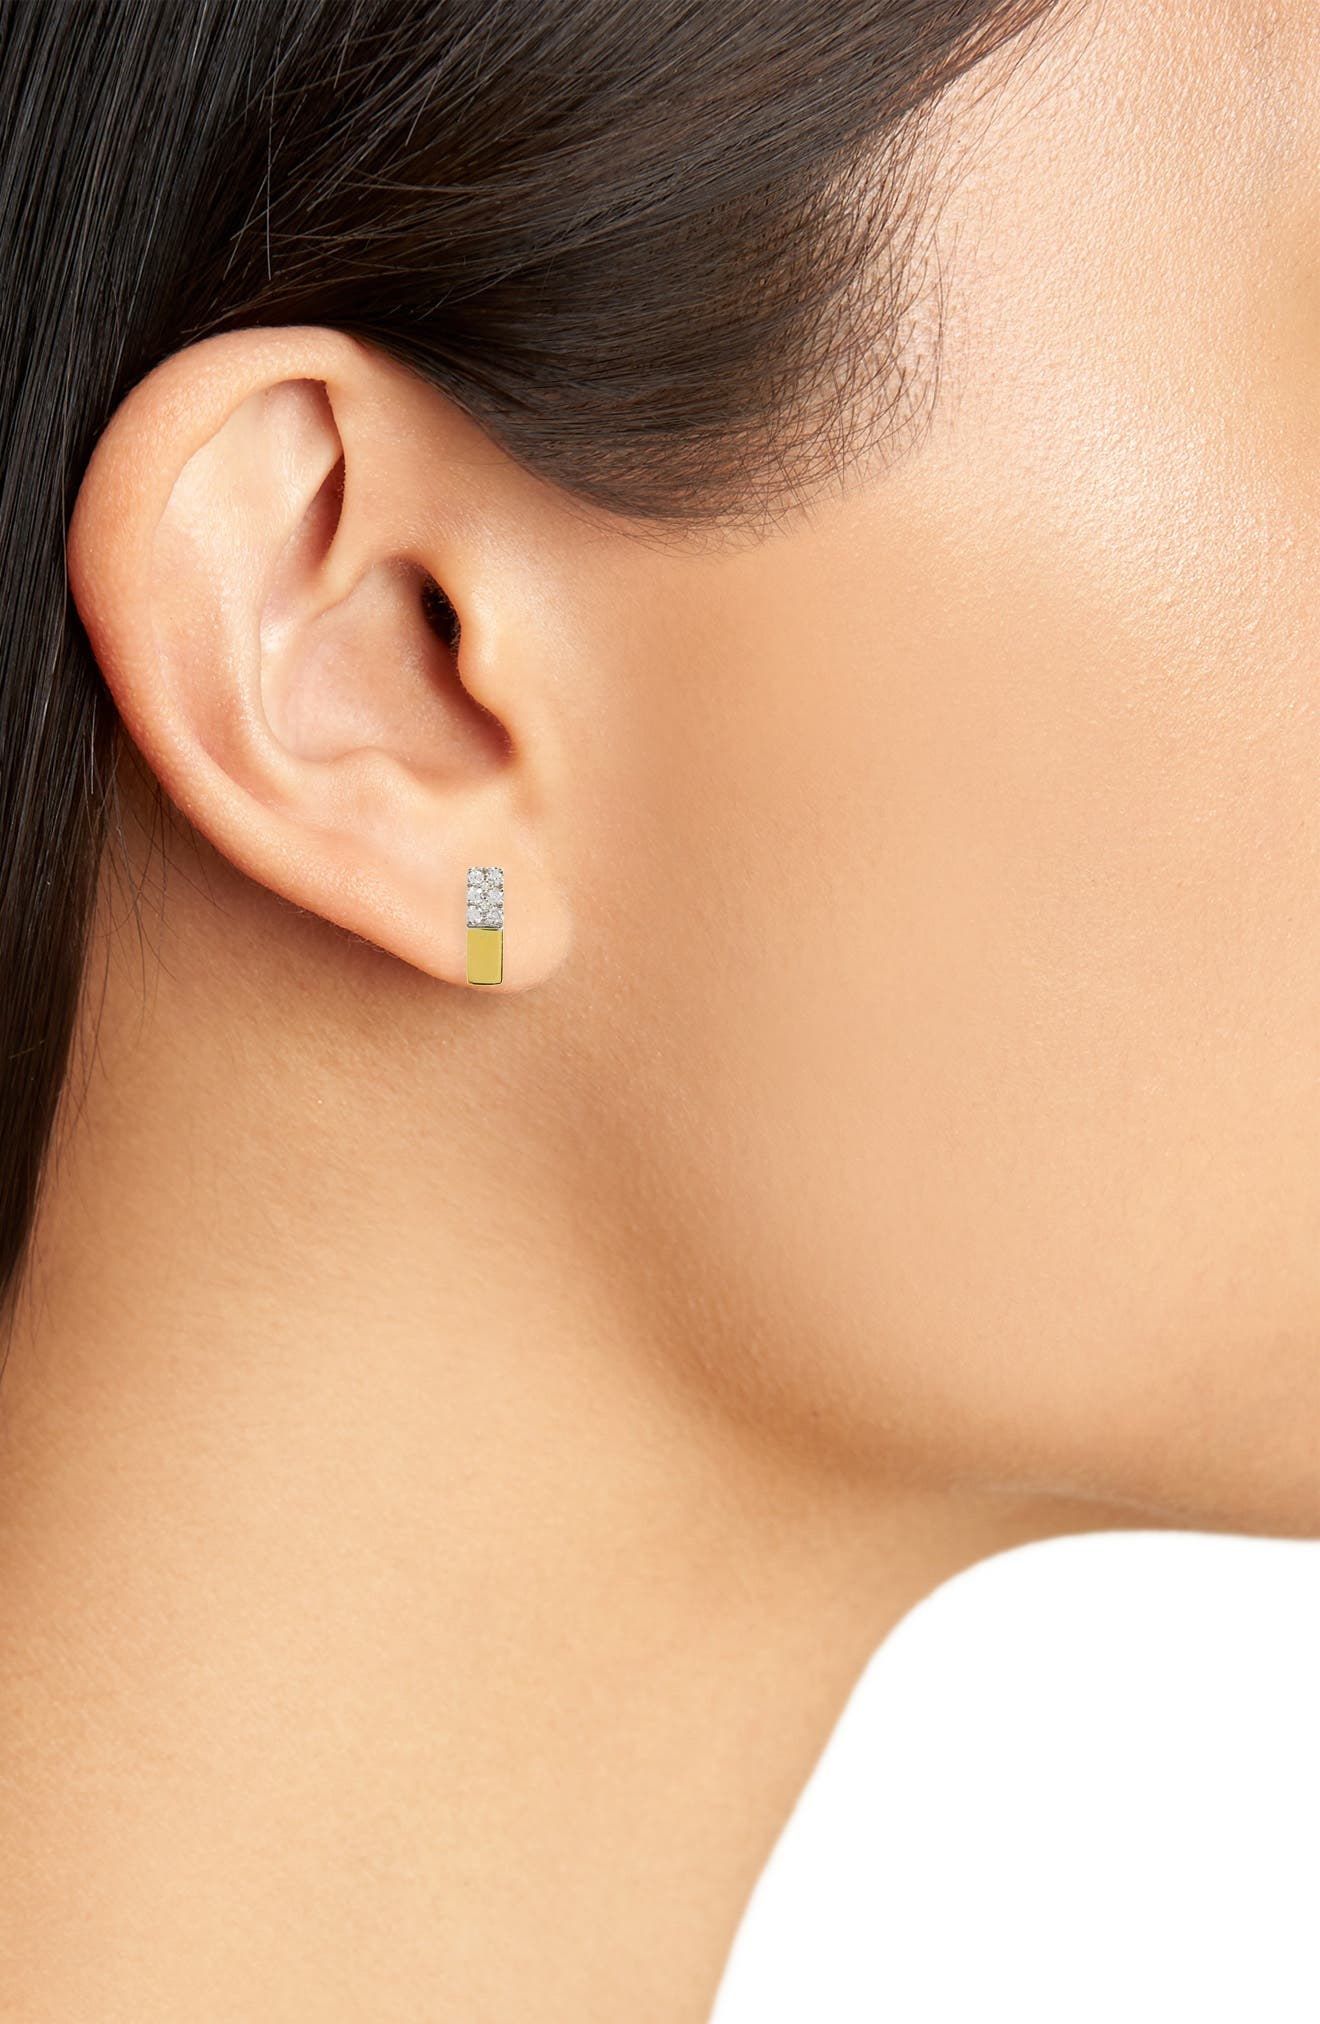 Kiera Diamond & 18K Gold Bar Stud Earrings,                             Alternate thumbnail 2, color,                             YELLOW GOLD/ WHITE GOLD